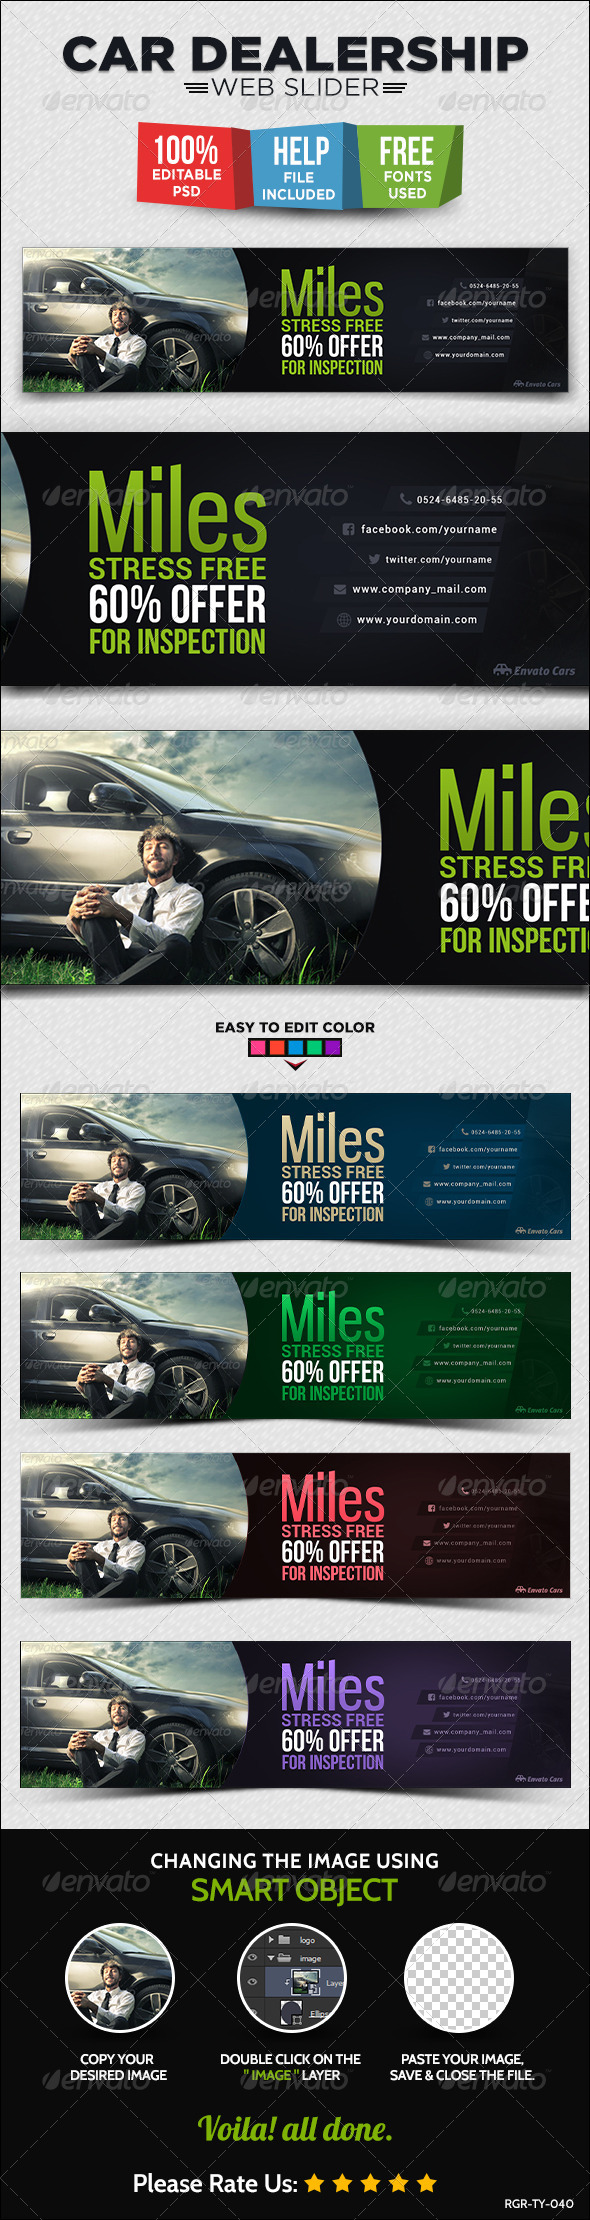 GraphicRiver Car Dealership Web Slider 8716939